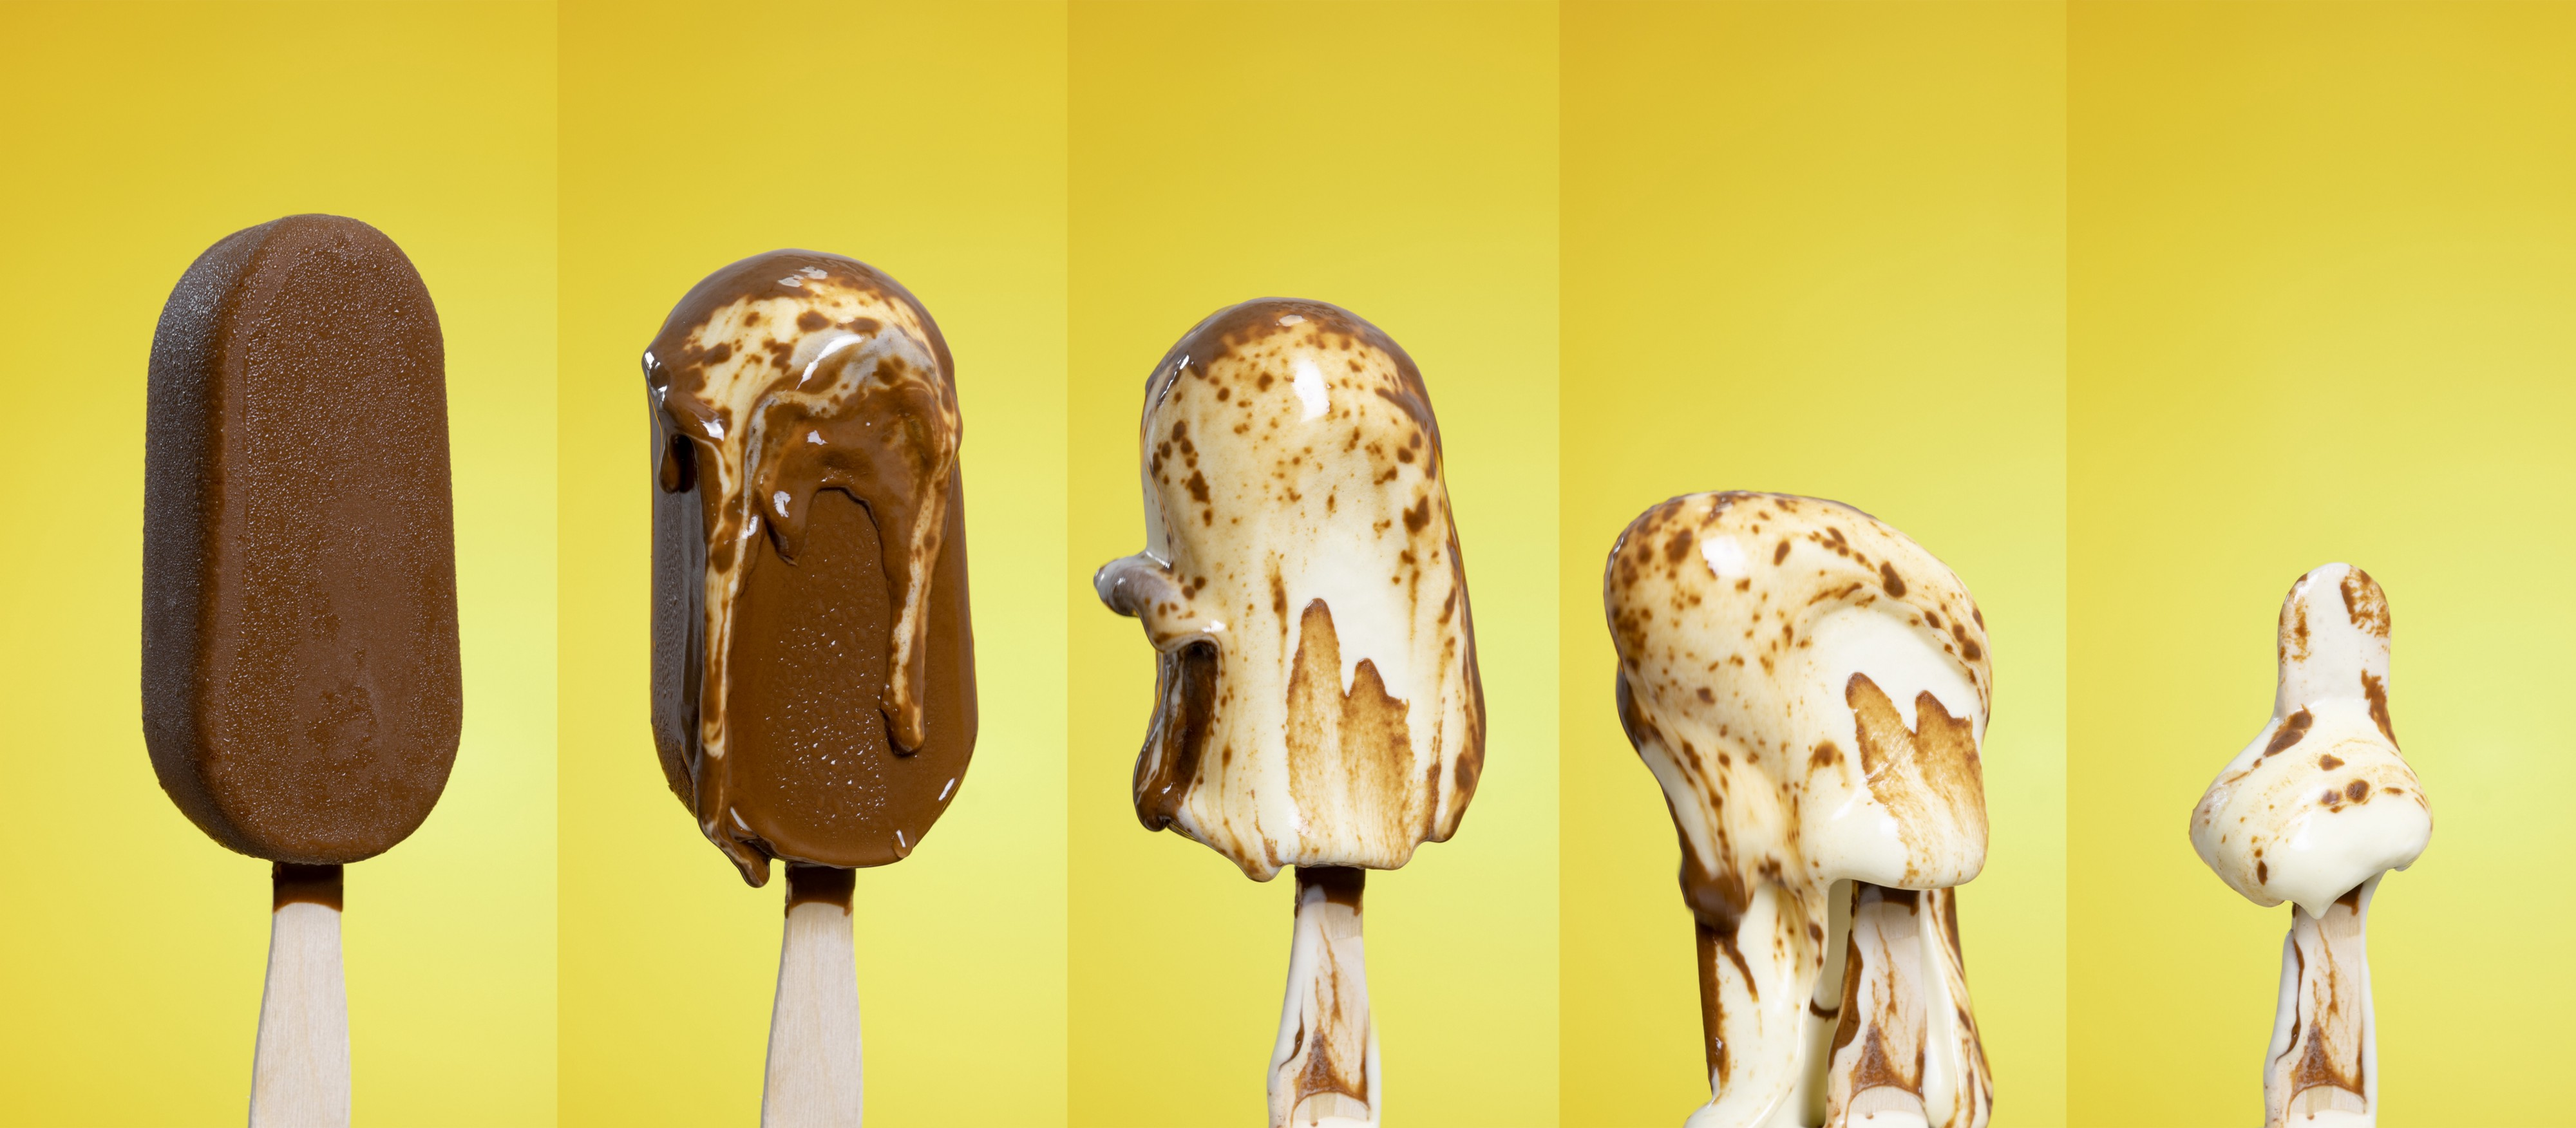 Ice Cream bar in 5 different stages of melting ranging from not melted to completely melted